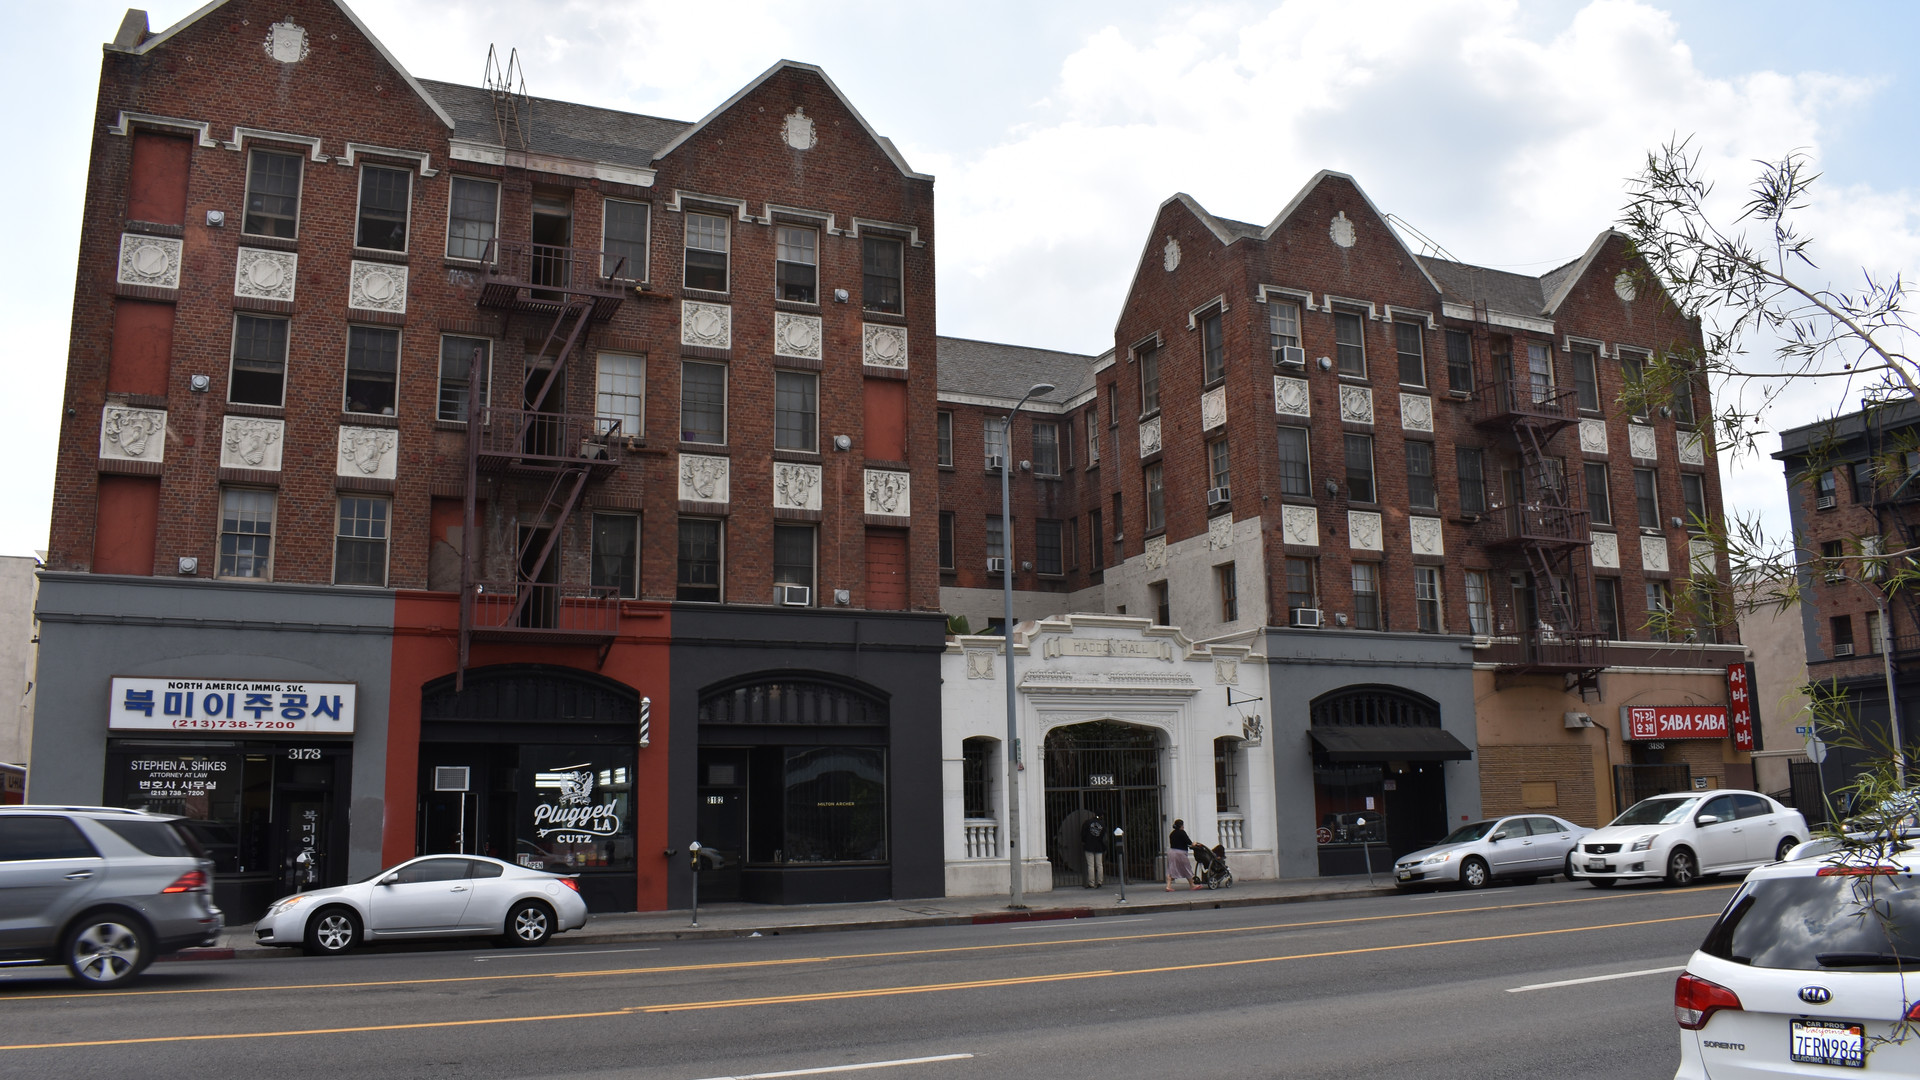 Los Angeles Koreatown Mixed Use Purchase - 50 Units